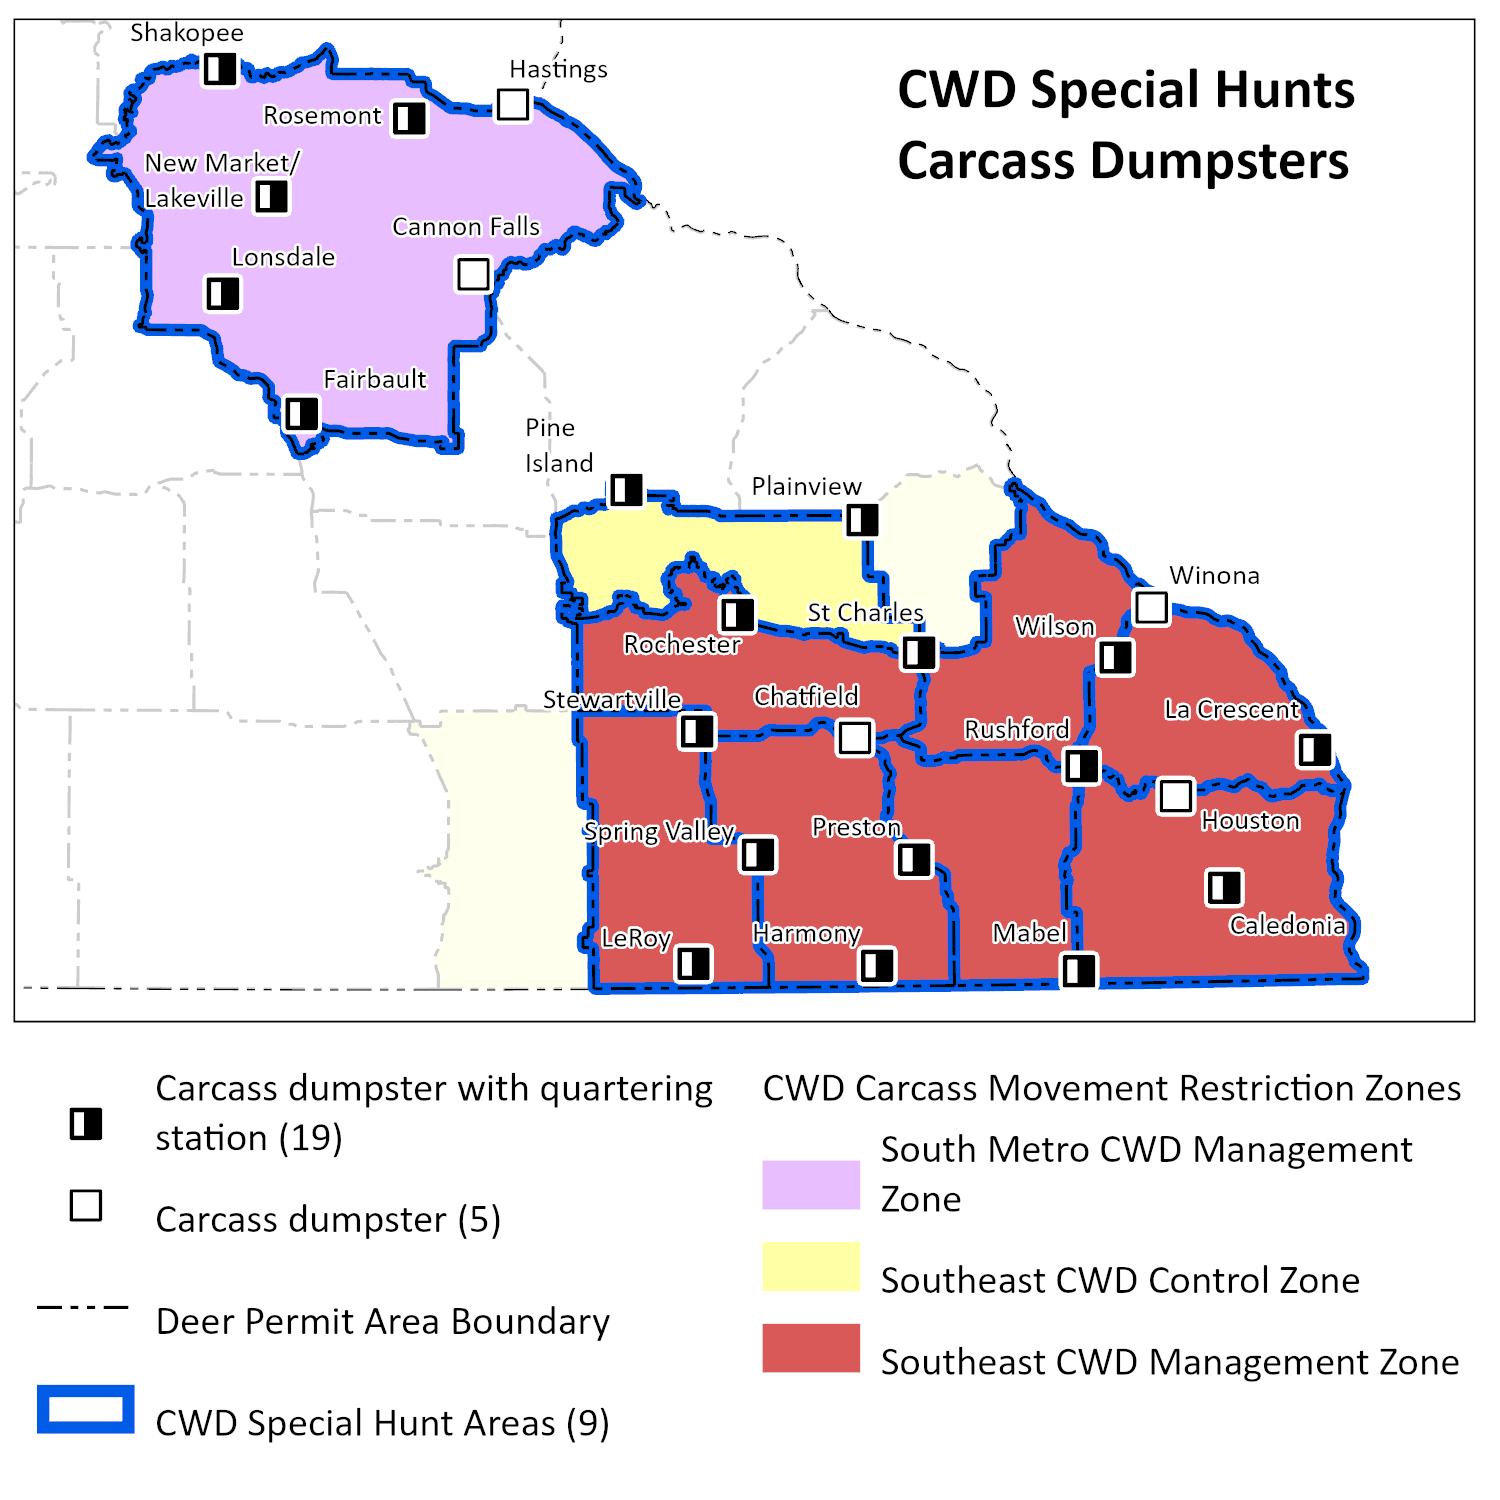 Map of carcass disposal locations for 2020 special hunts.